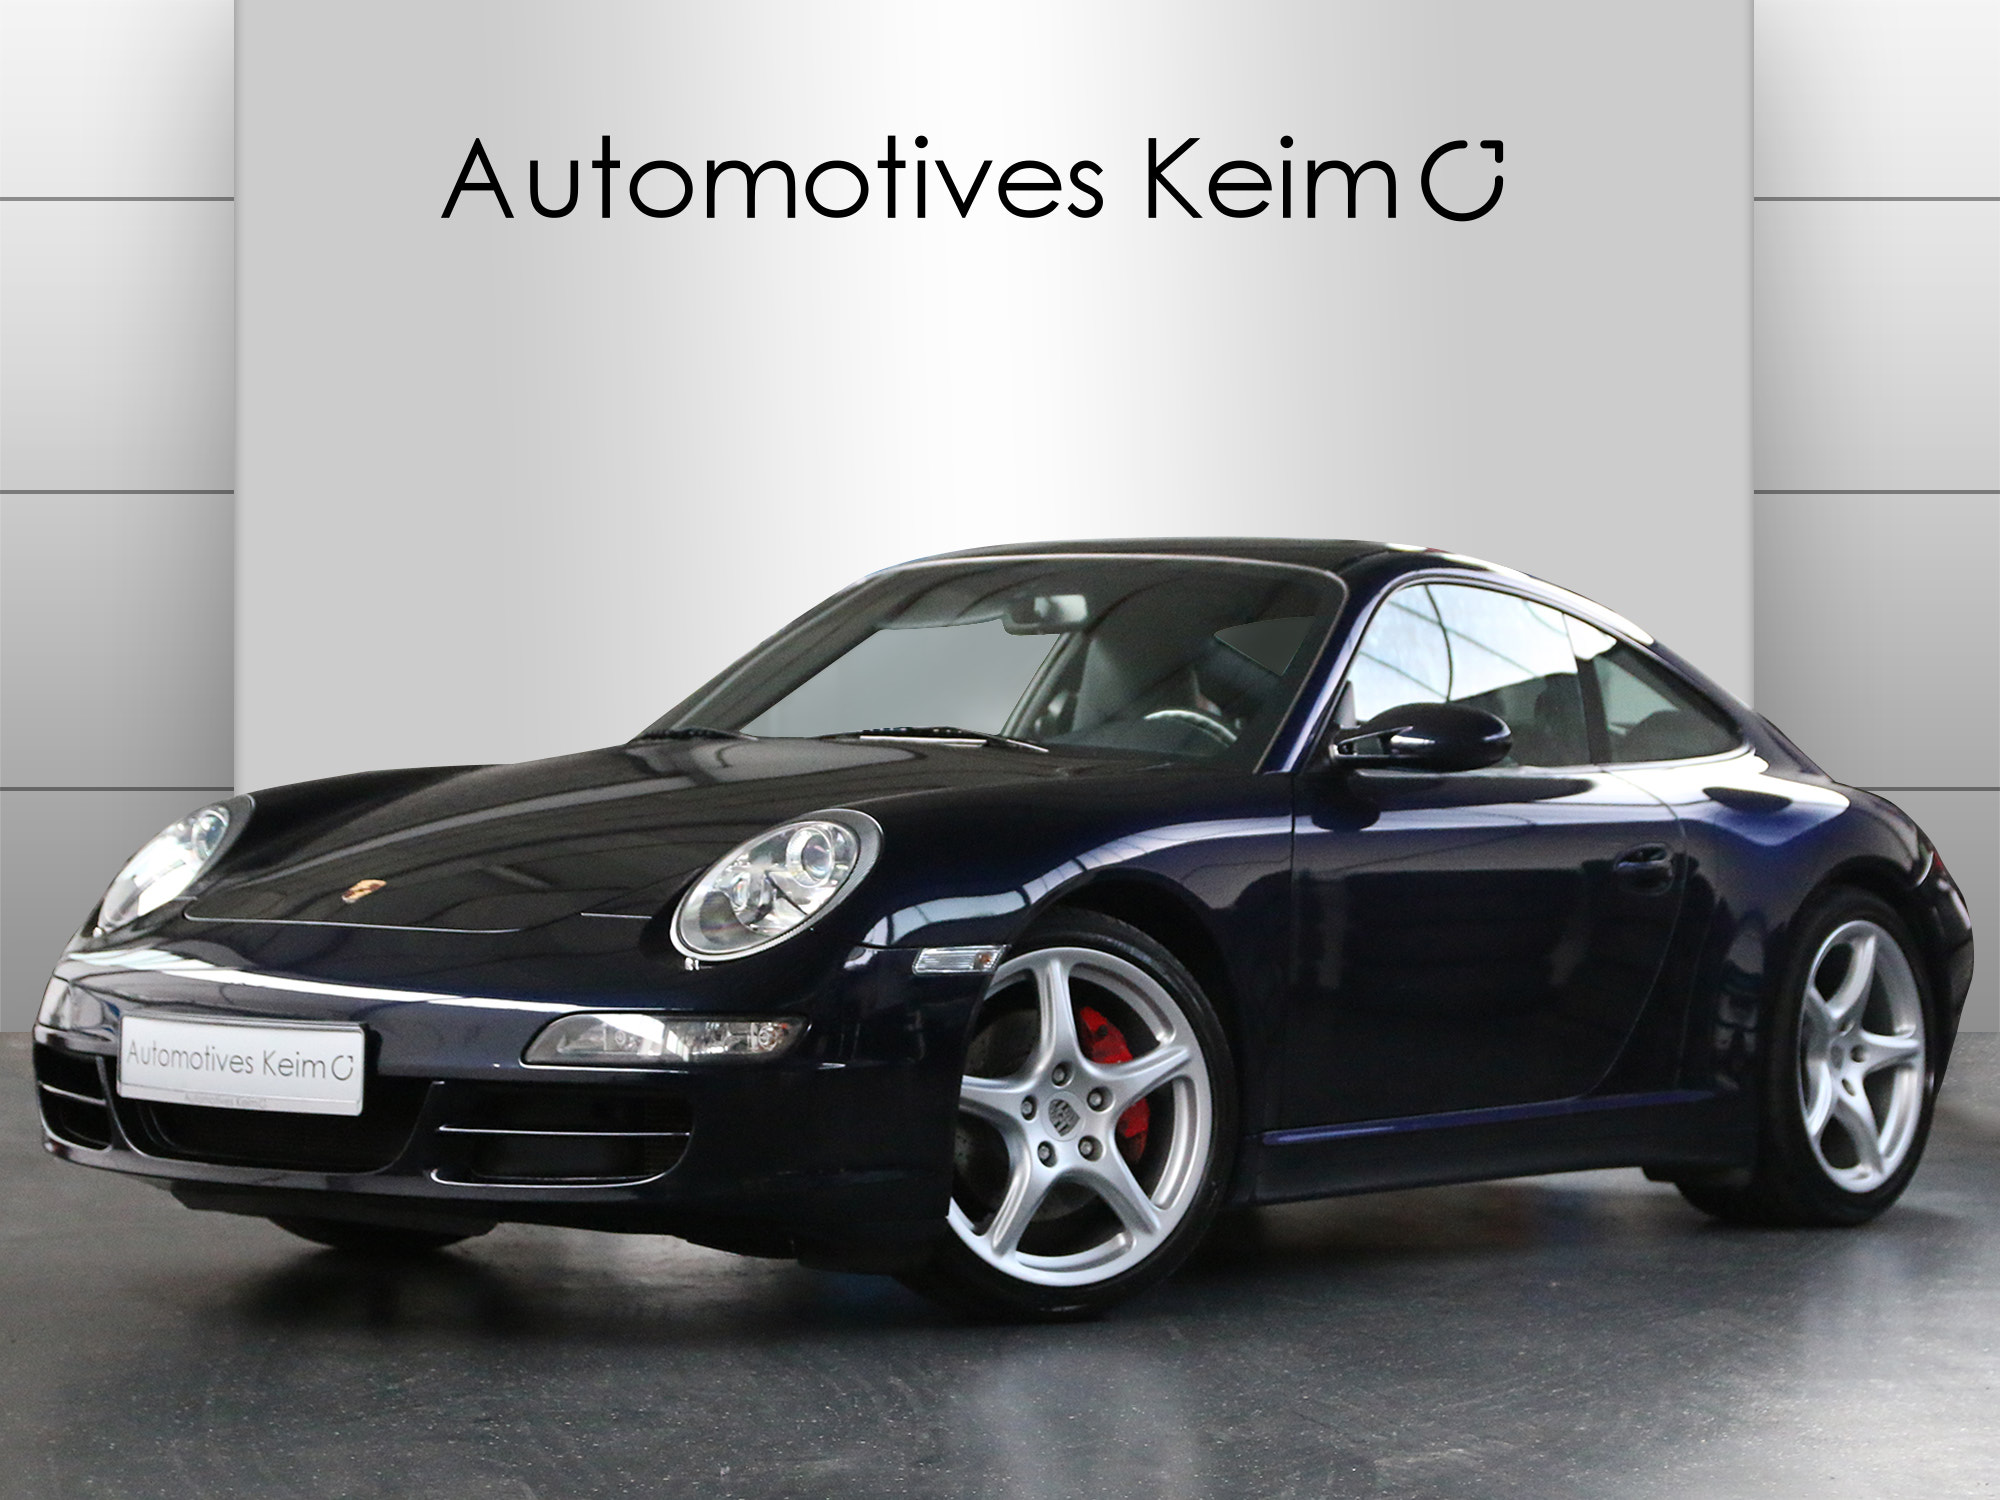 PORSCHE 911 997 Automotives Keim GmbH 63500 Seligenstadt Www.automotives Keim.de Oliver Keim 000134